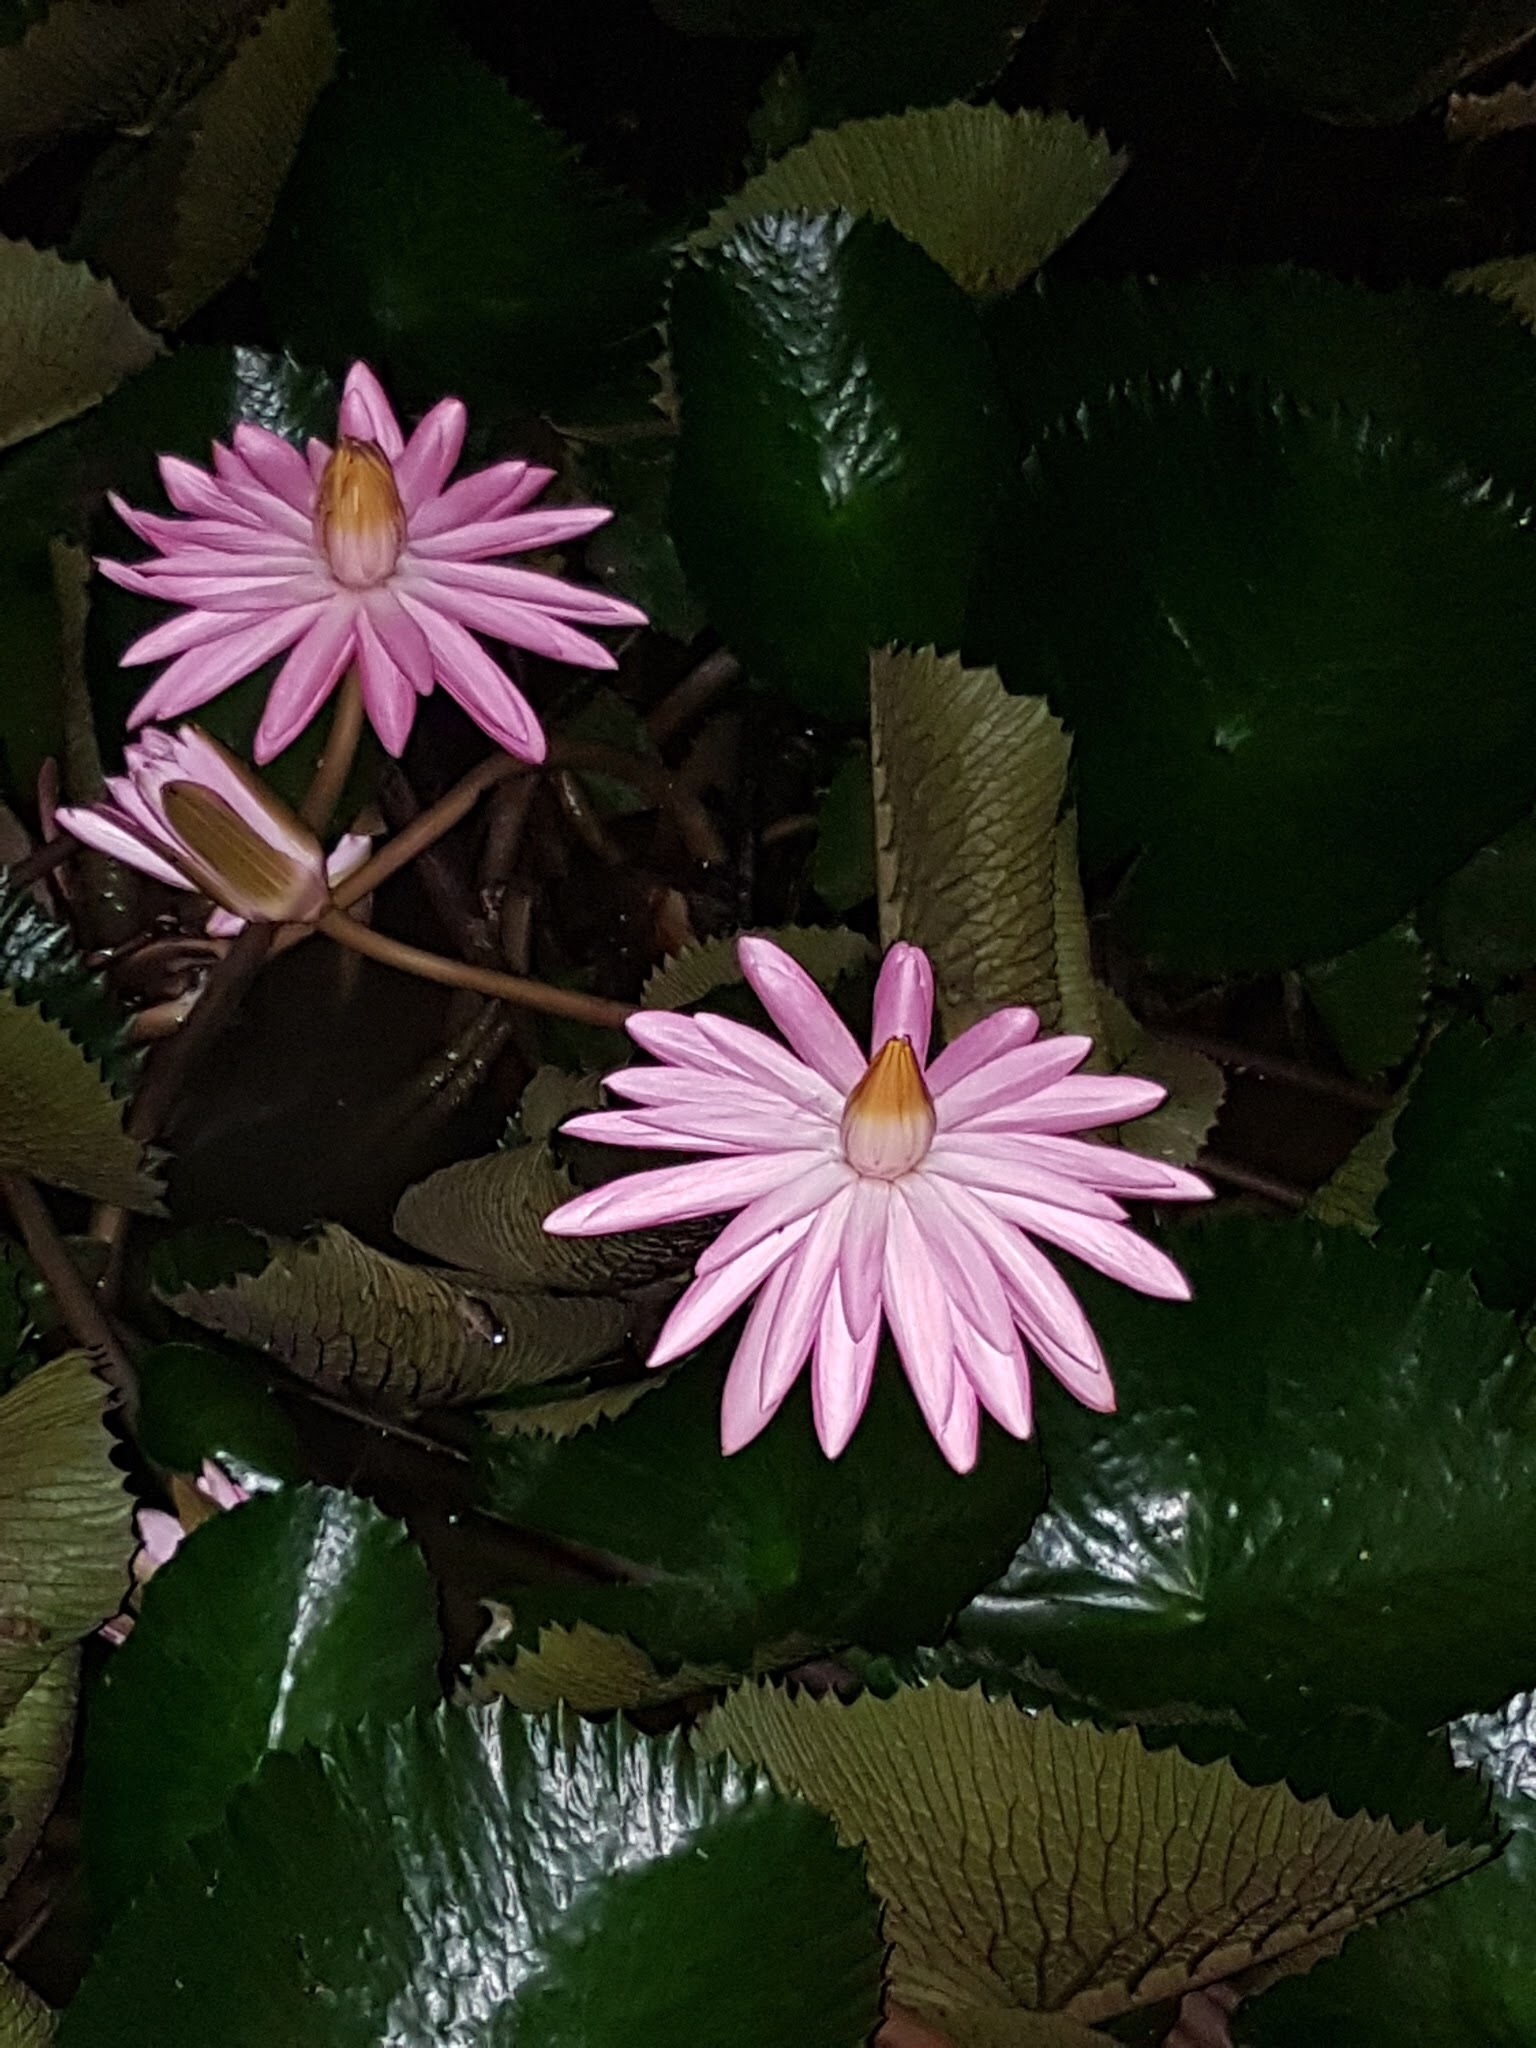 Pink water lilies at night by Nicki Fothergill